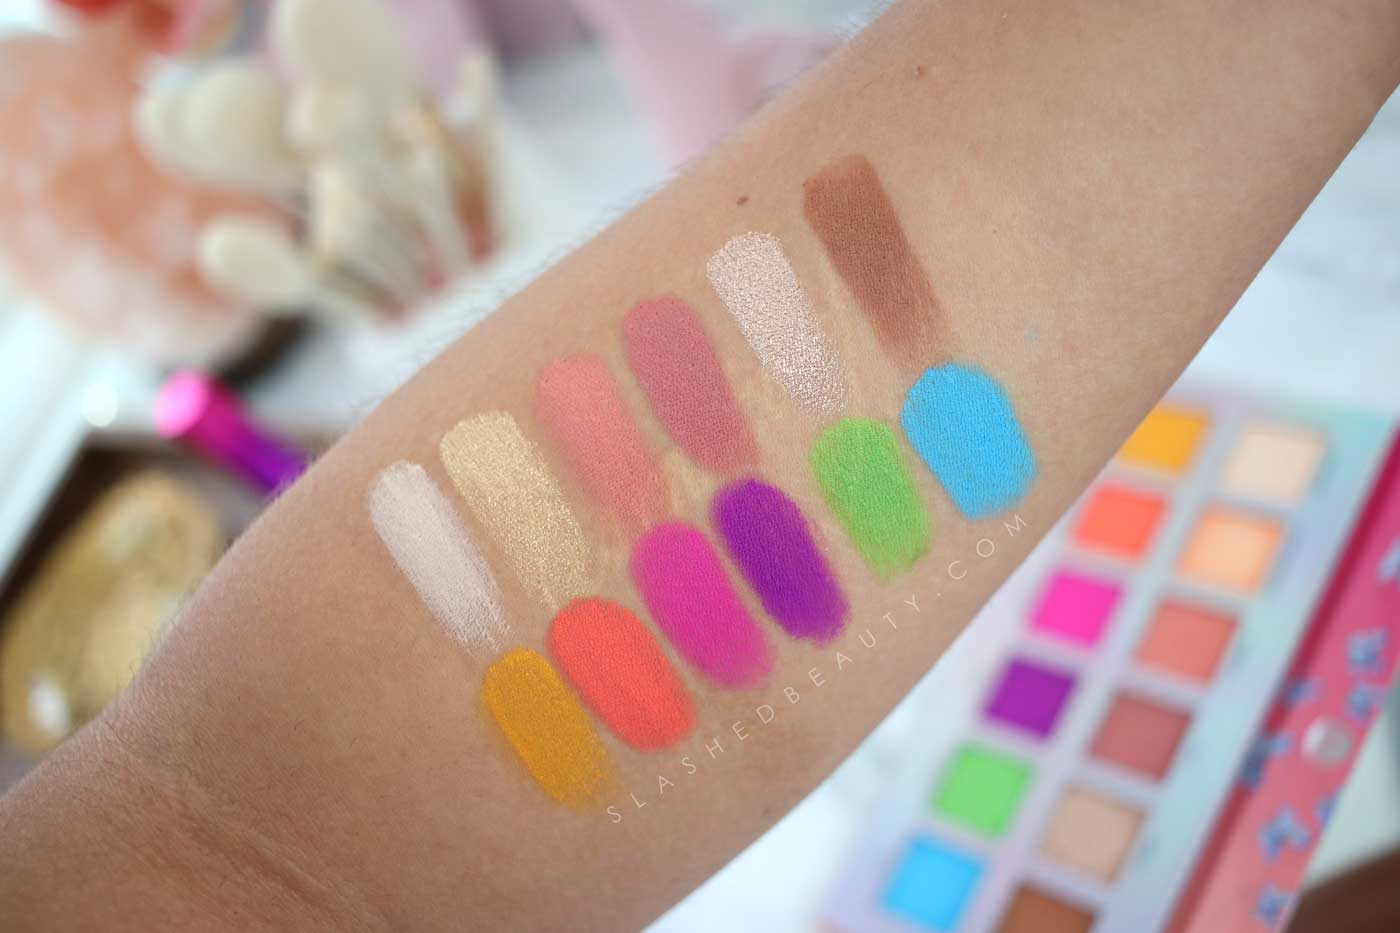 BH Cosmetics Laviedunprince Palette Swatches | Slashed Beauty